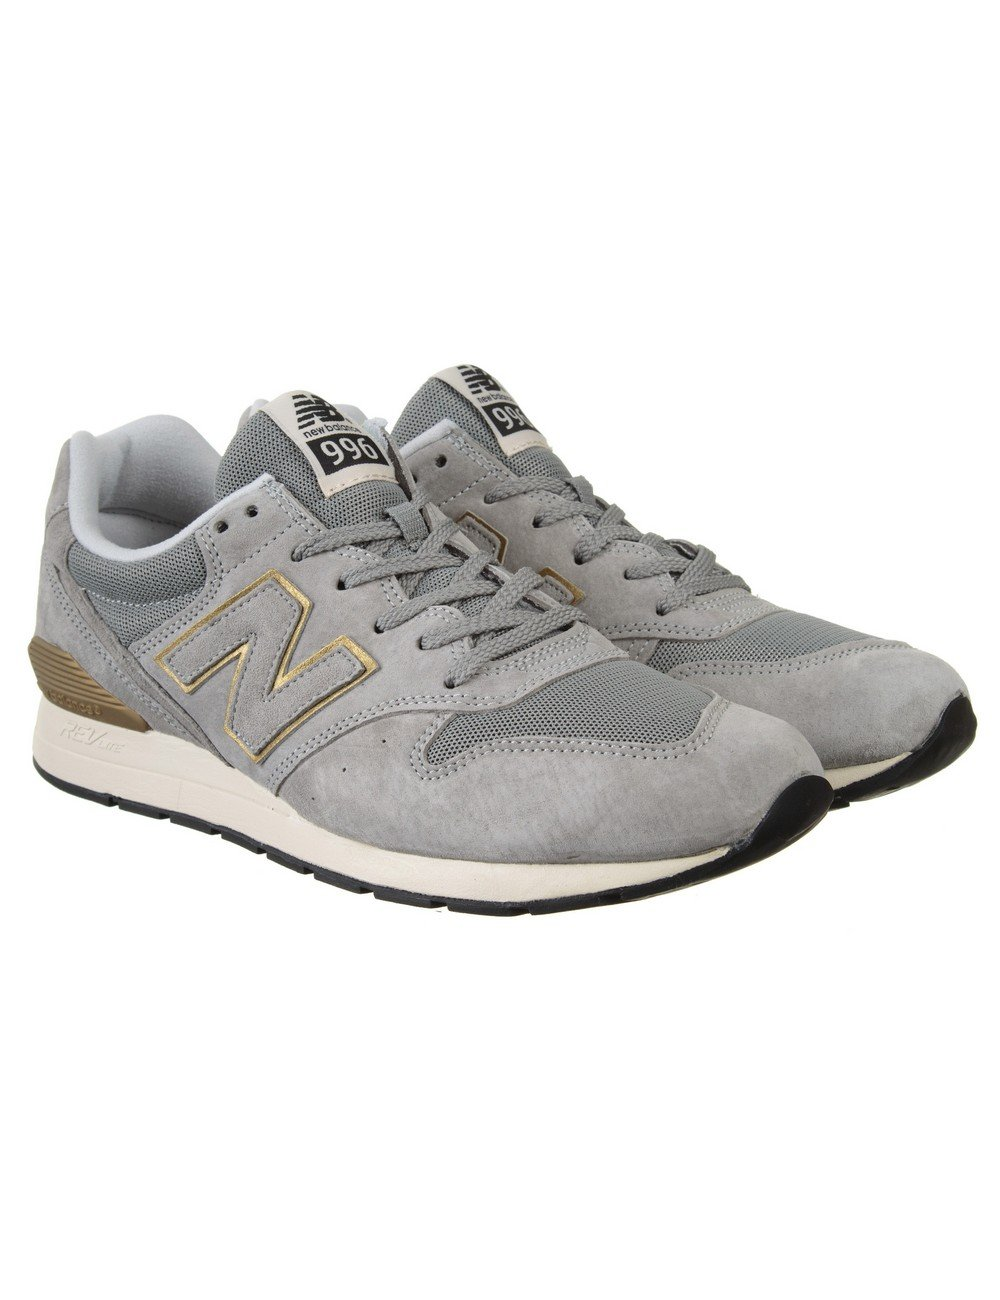 new balance mrl996ha shoes grey gold new balance from. Black Bedroom Furniture Sets. Home Design Ideas